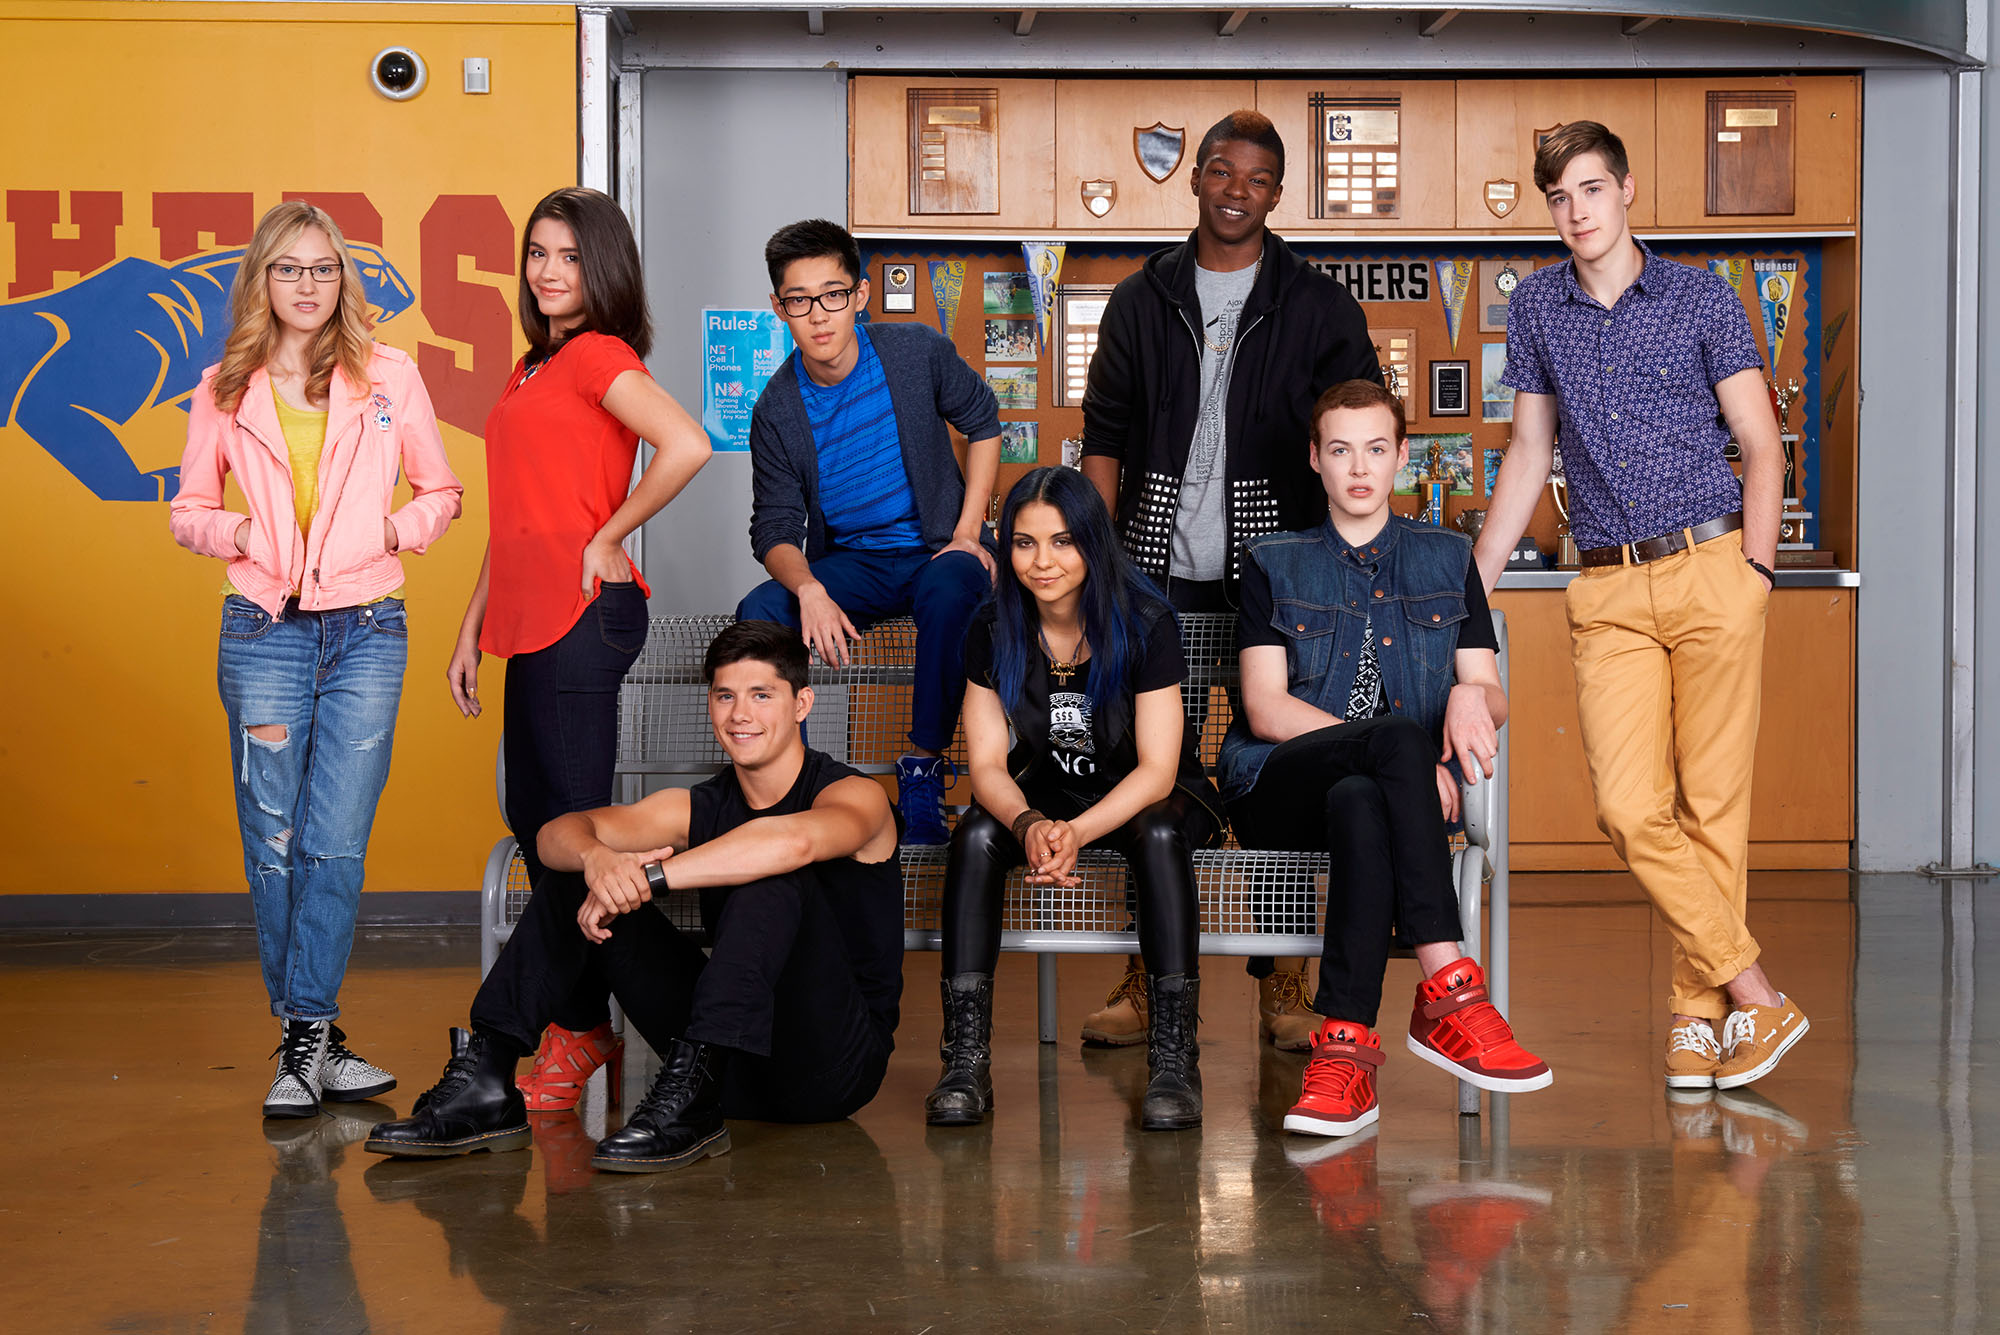 Degrassi: New Class TV show coming to Netflix